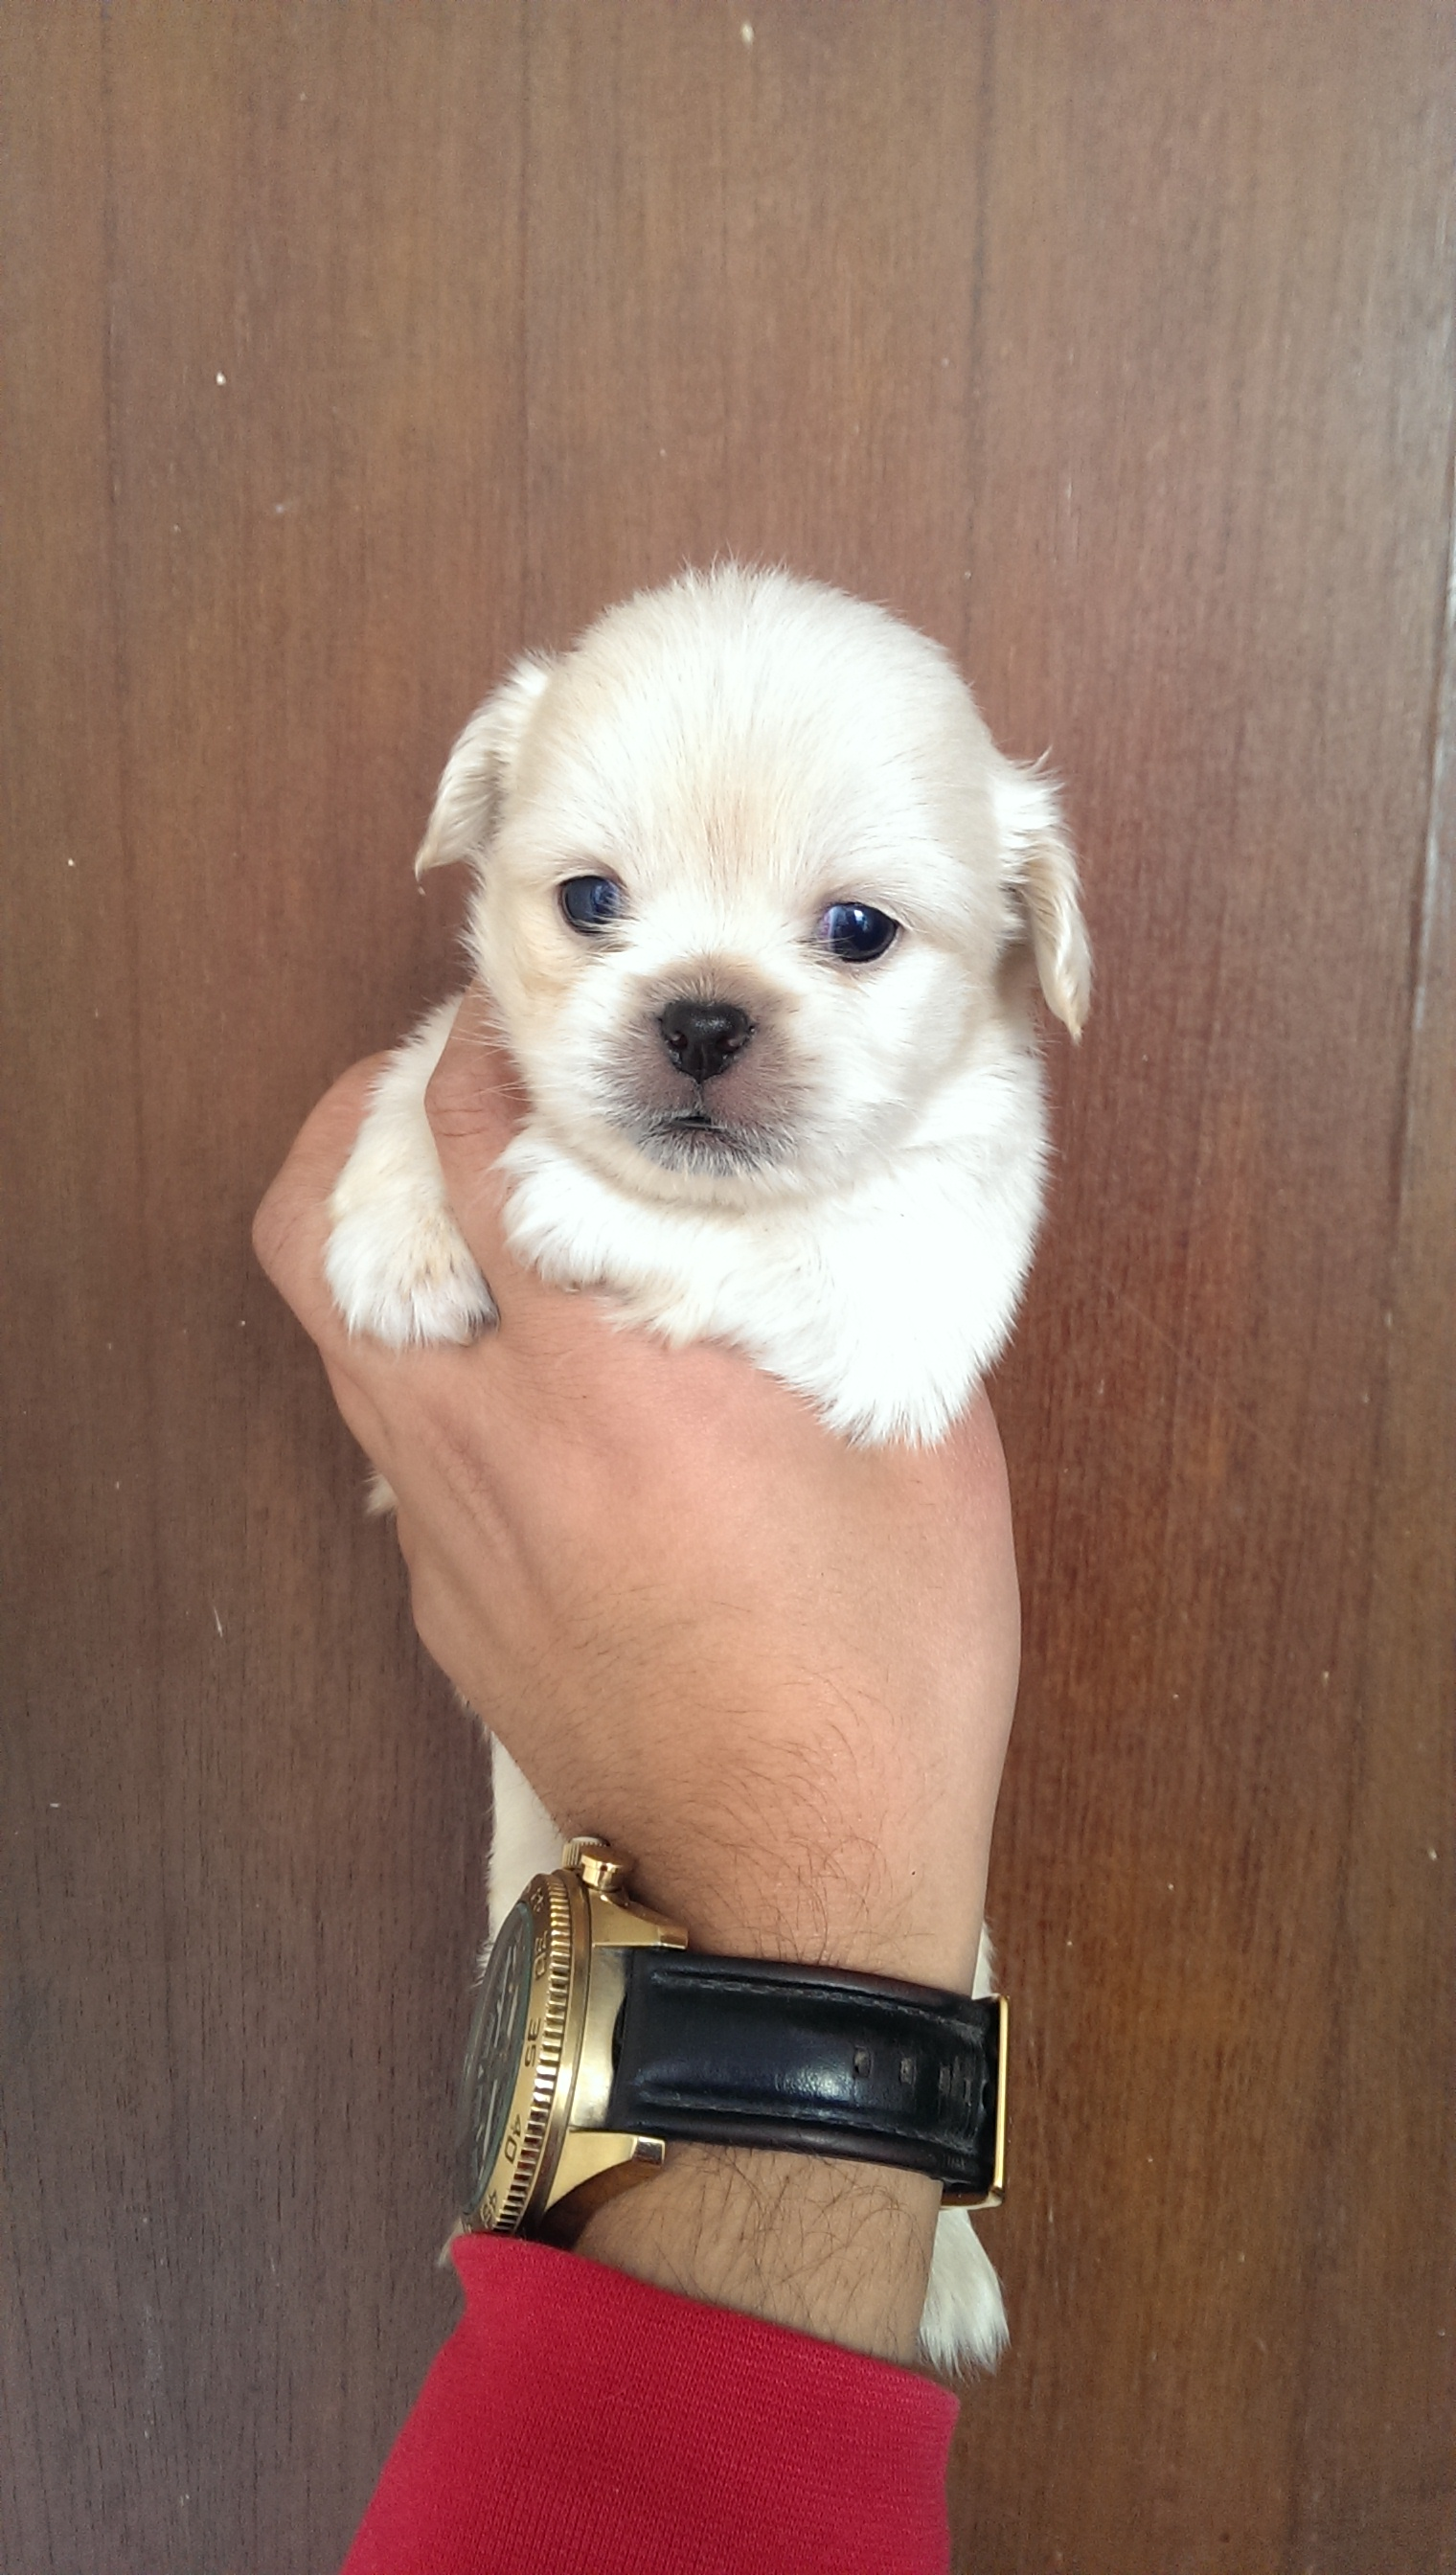 Pekapoo Puppies For Sale Puppies For Sale Dogs For Sale